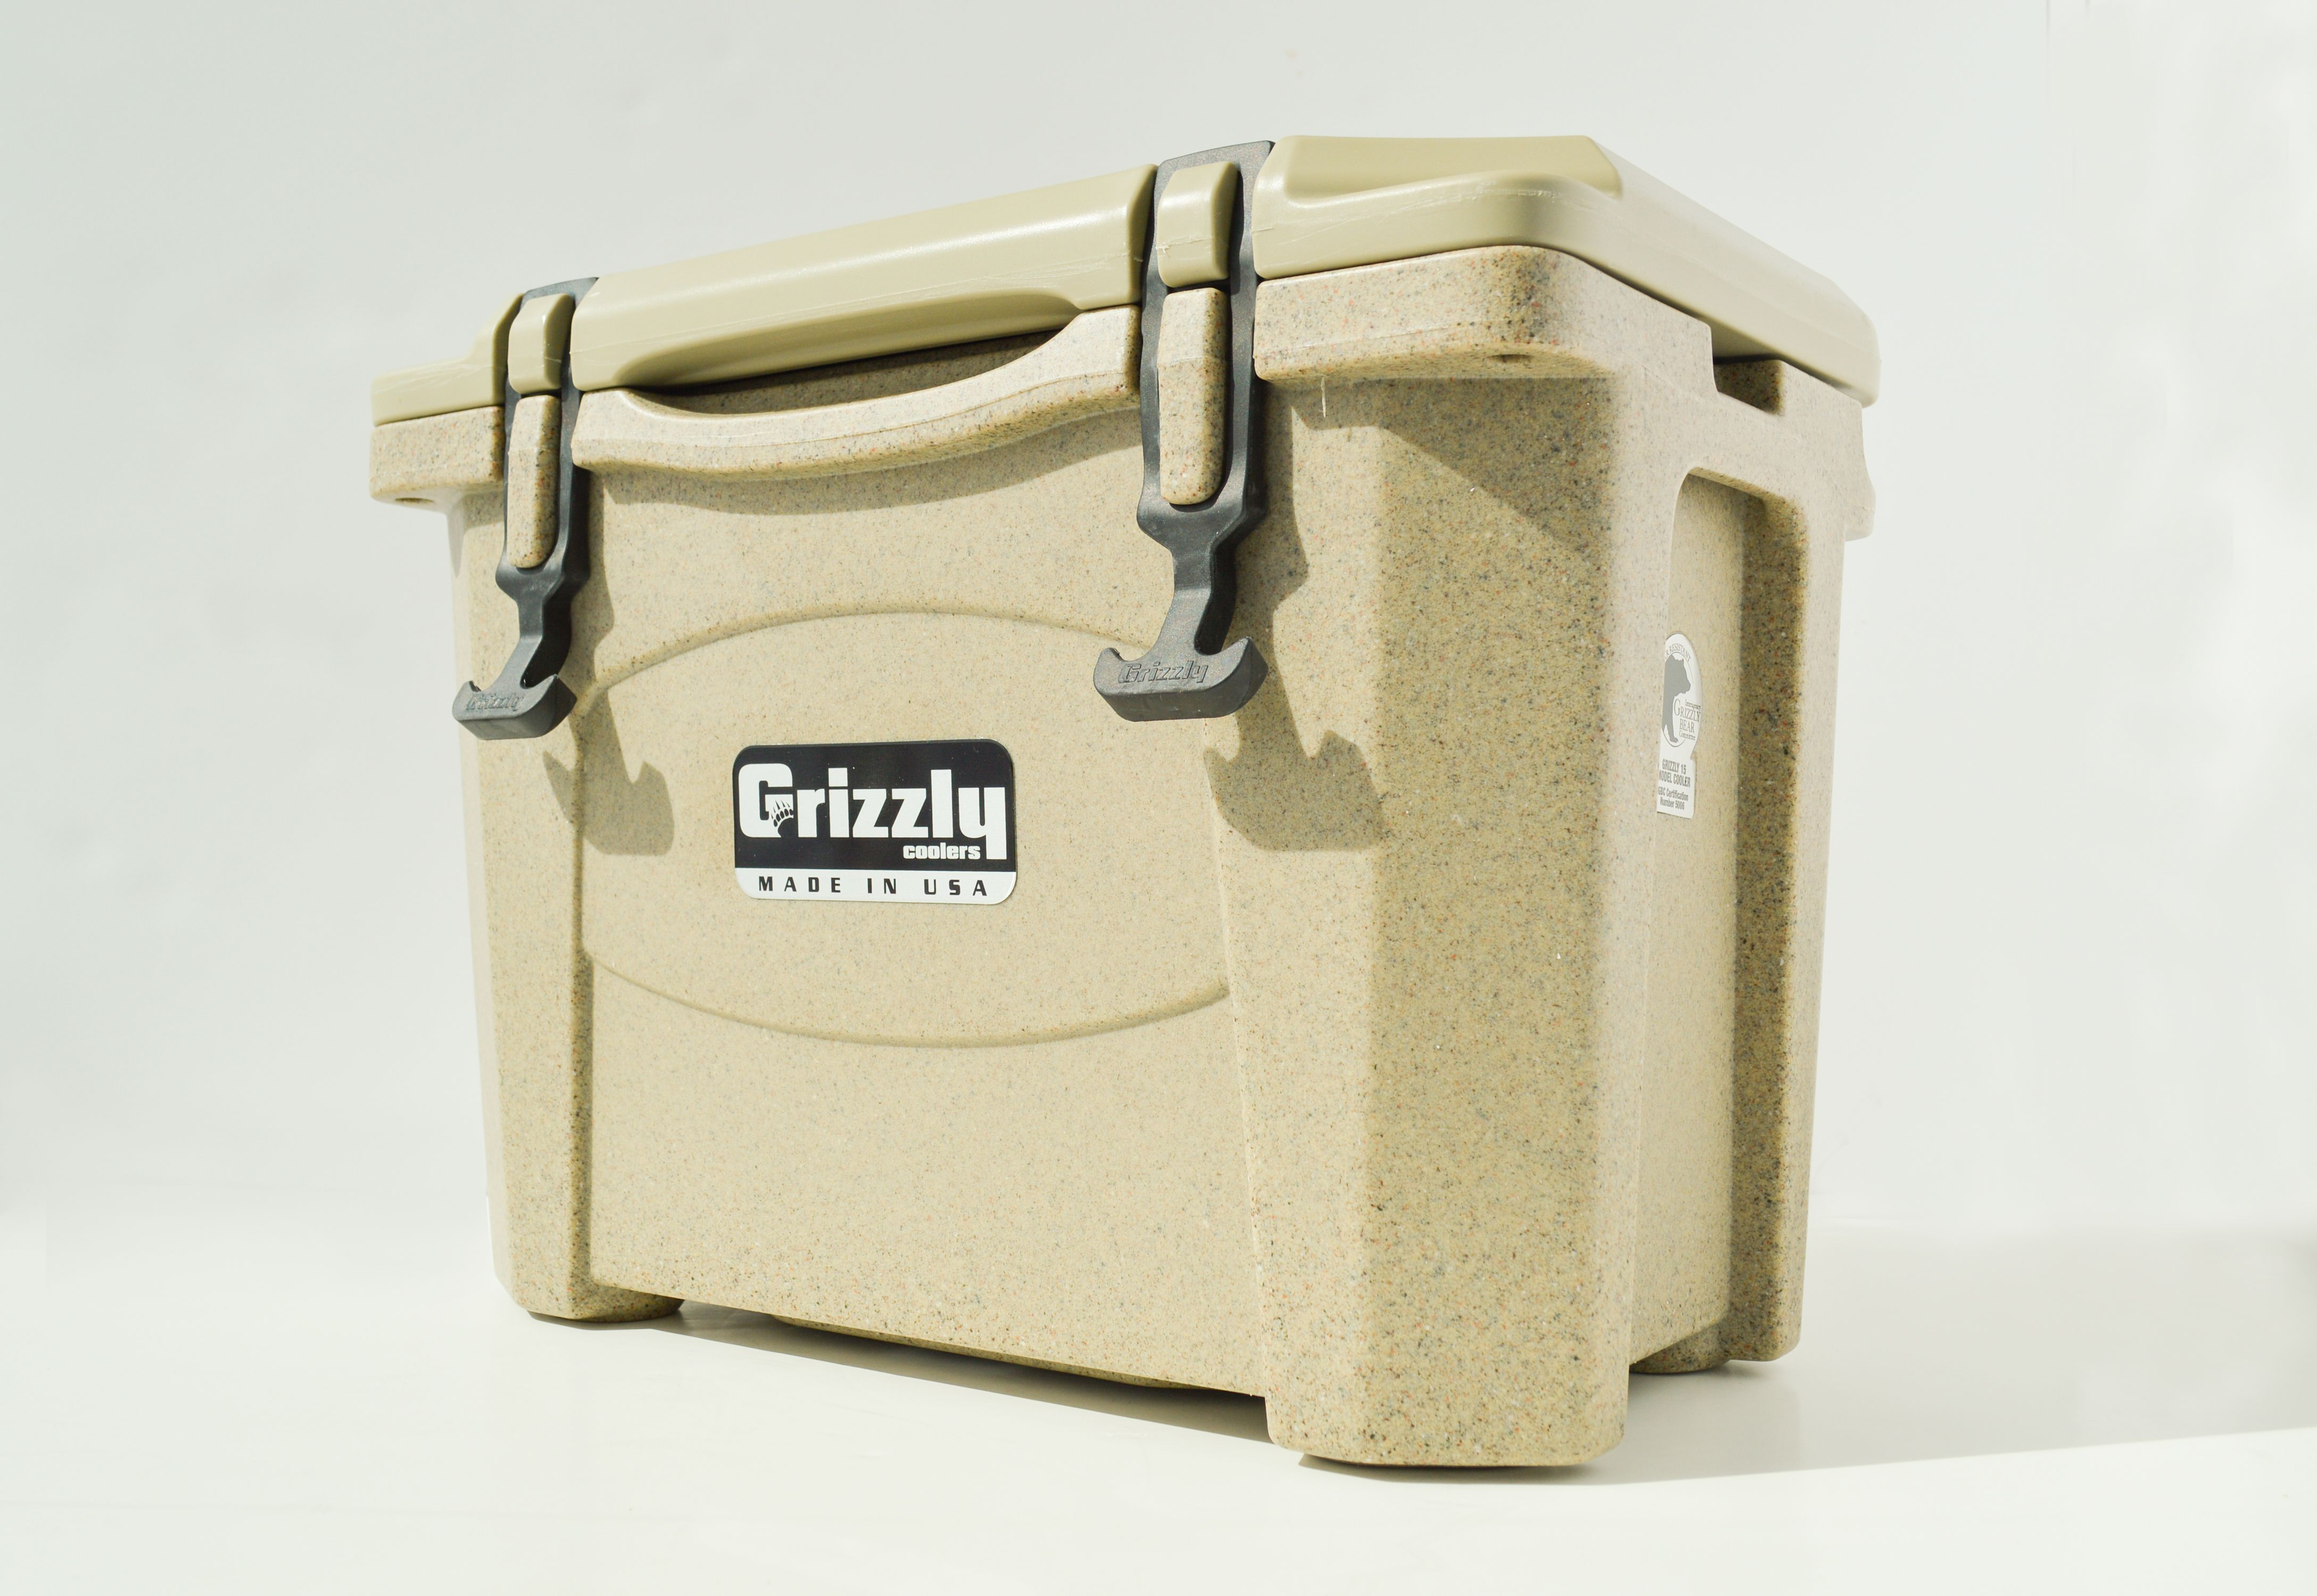 Grizzly 15 Quart Cooler - Sandstone/Tan